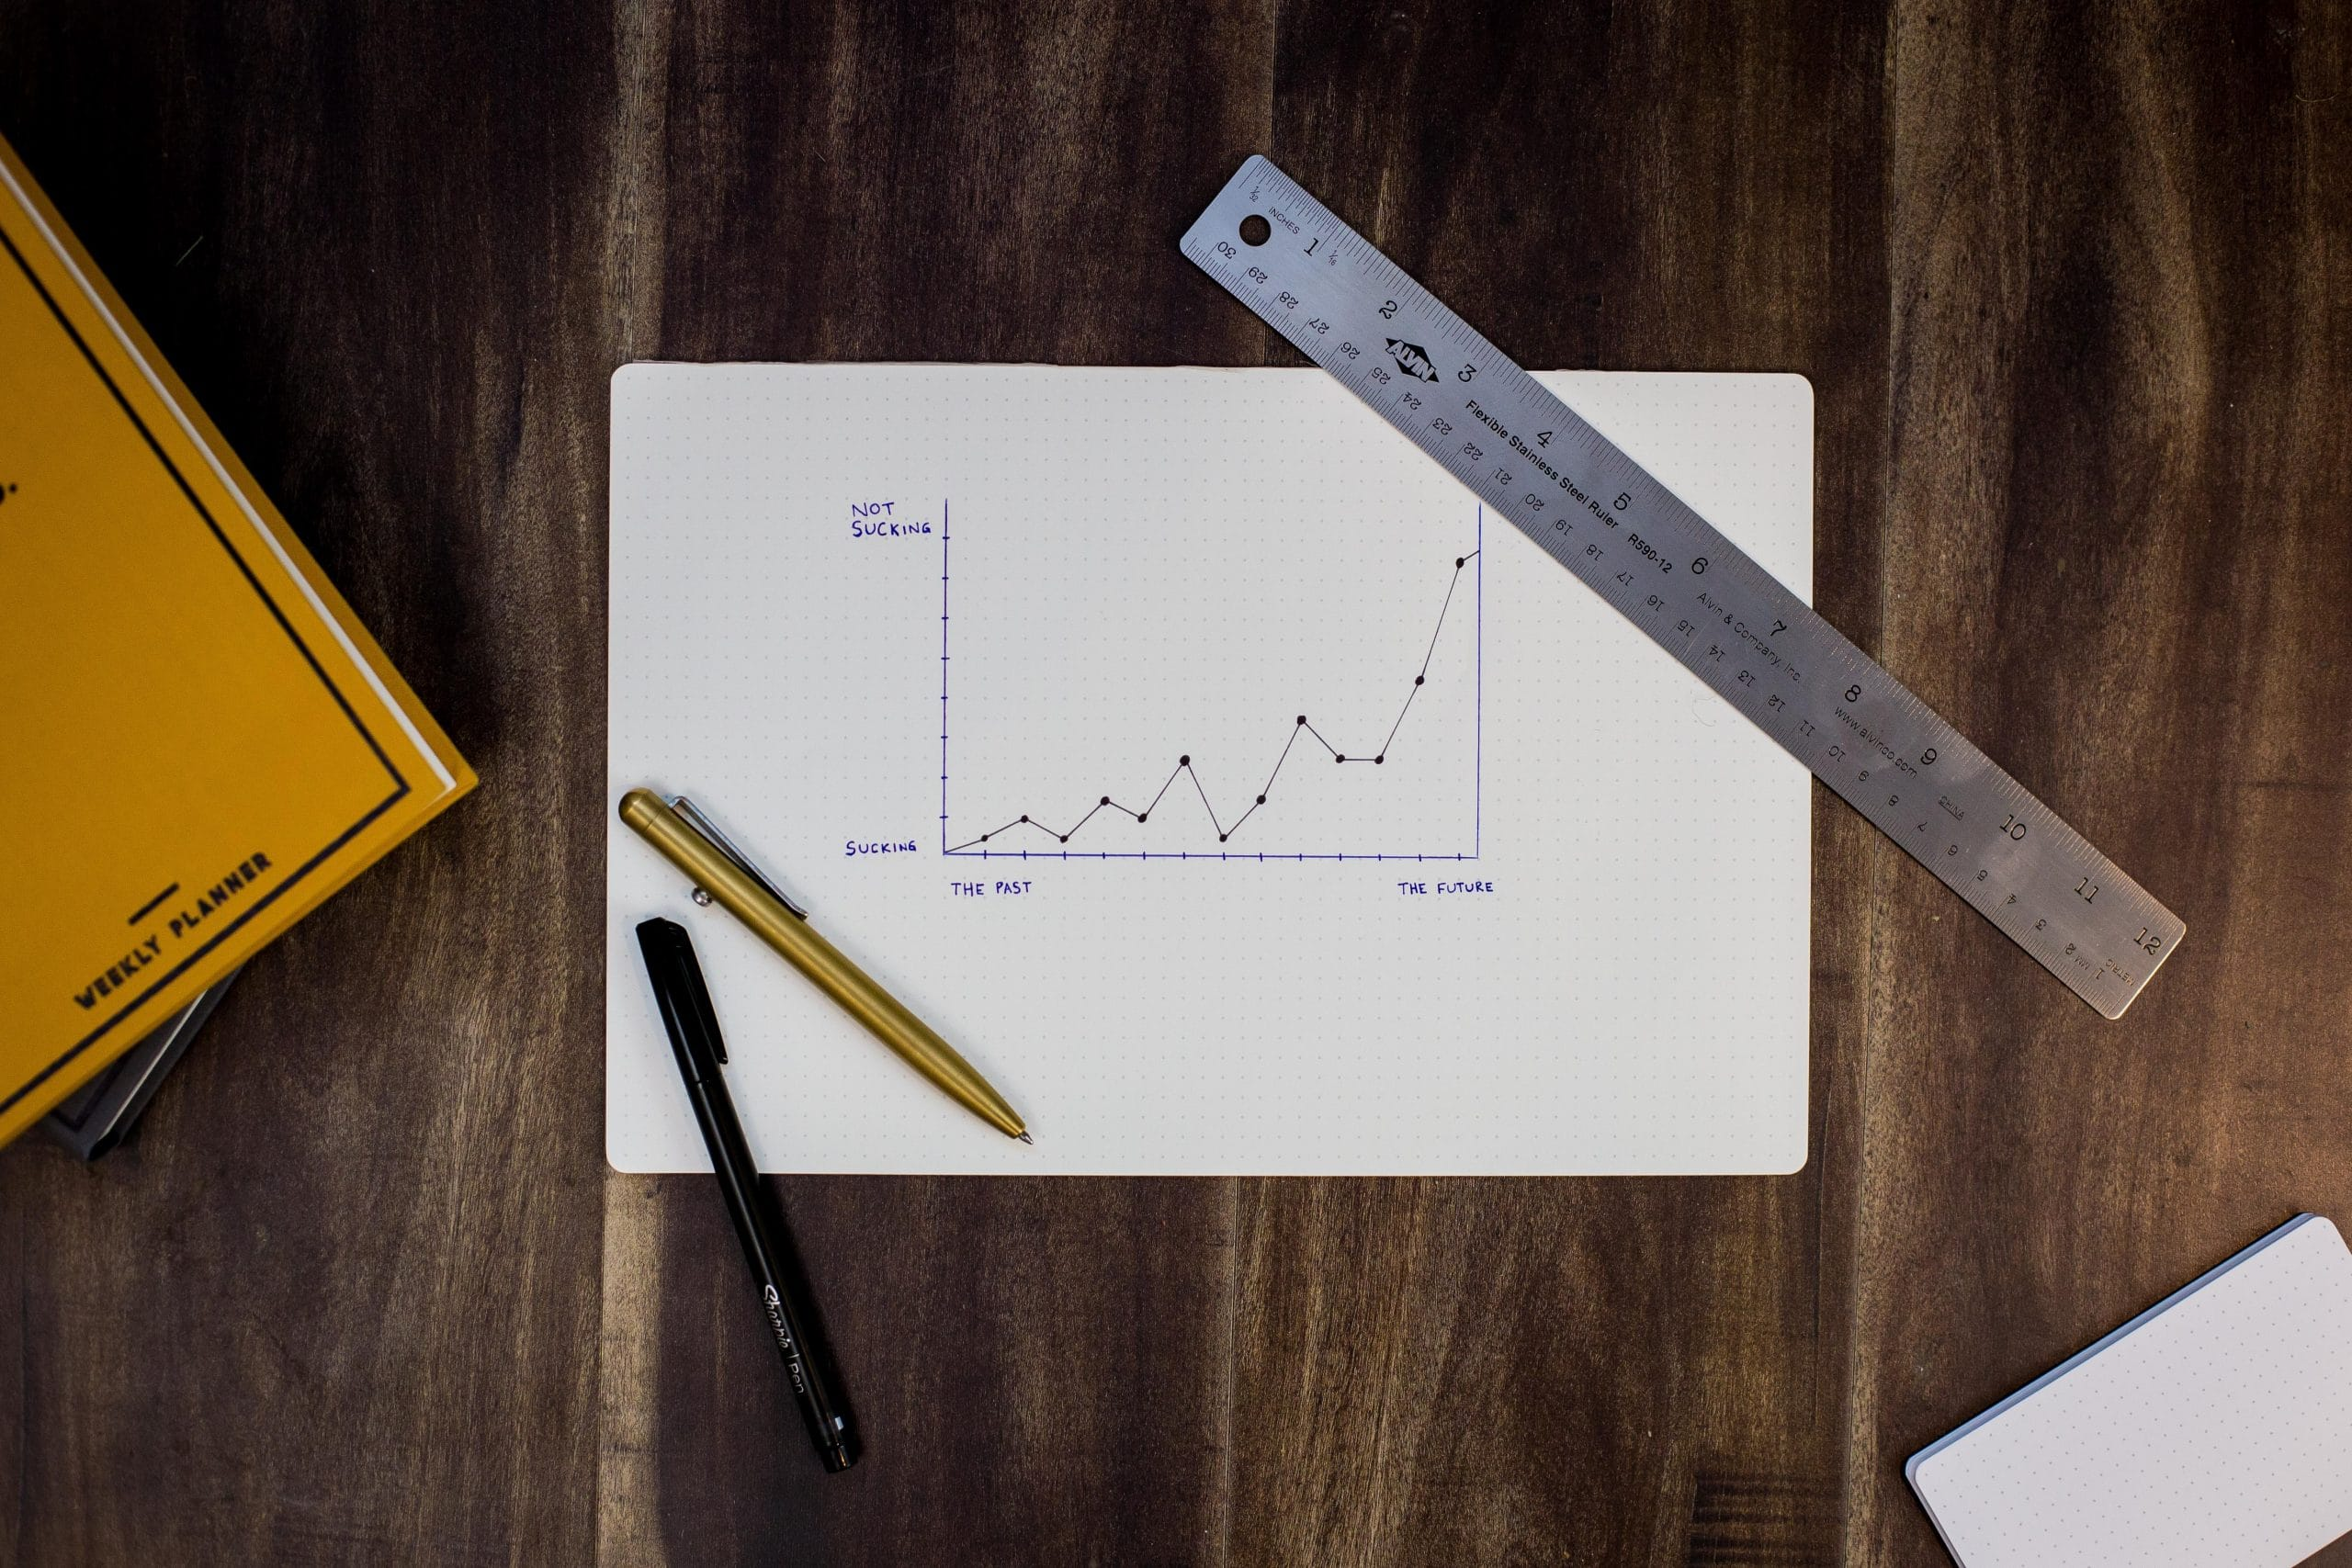 A piece of paper on a wooden desk shows a graph of customer experience metrics. There is a ruler and a couple pens